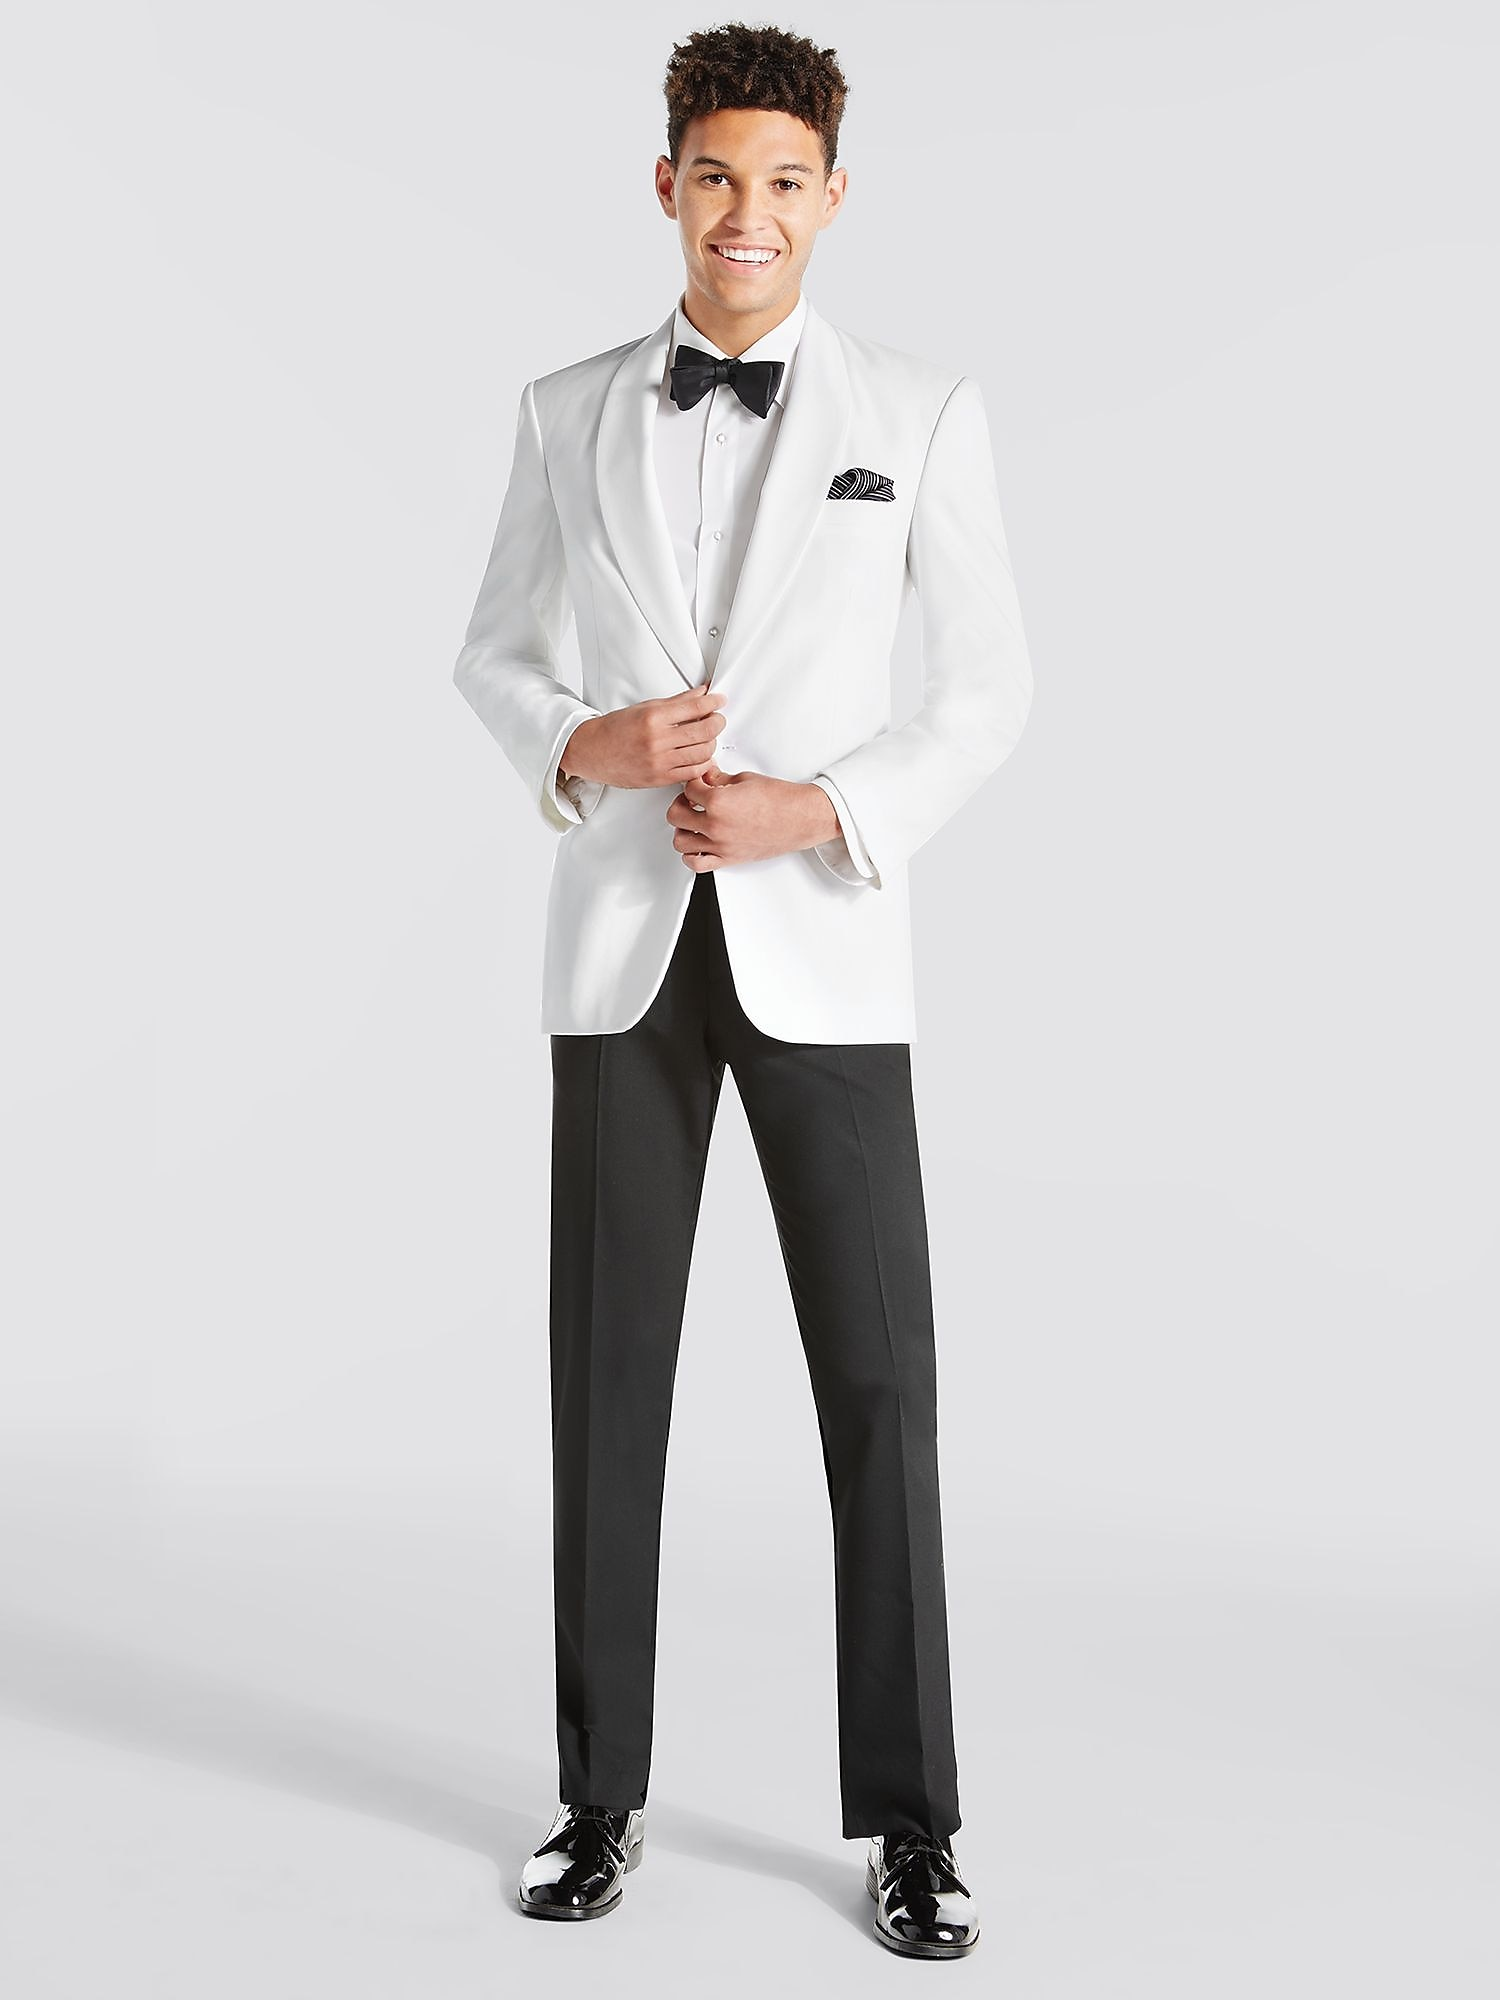 White Dinner Jacket, Shawl Lapel Tuxedo | Tuxedo Rental | Men's ...